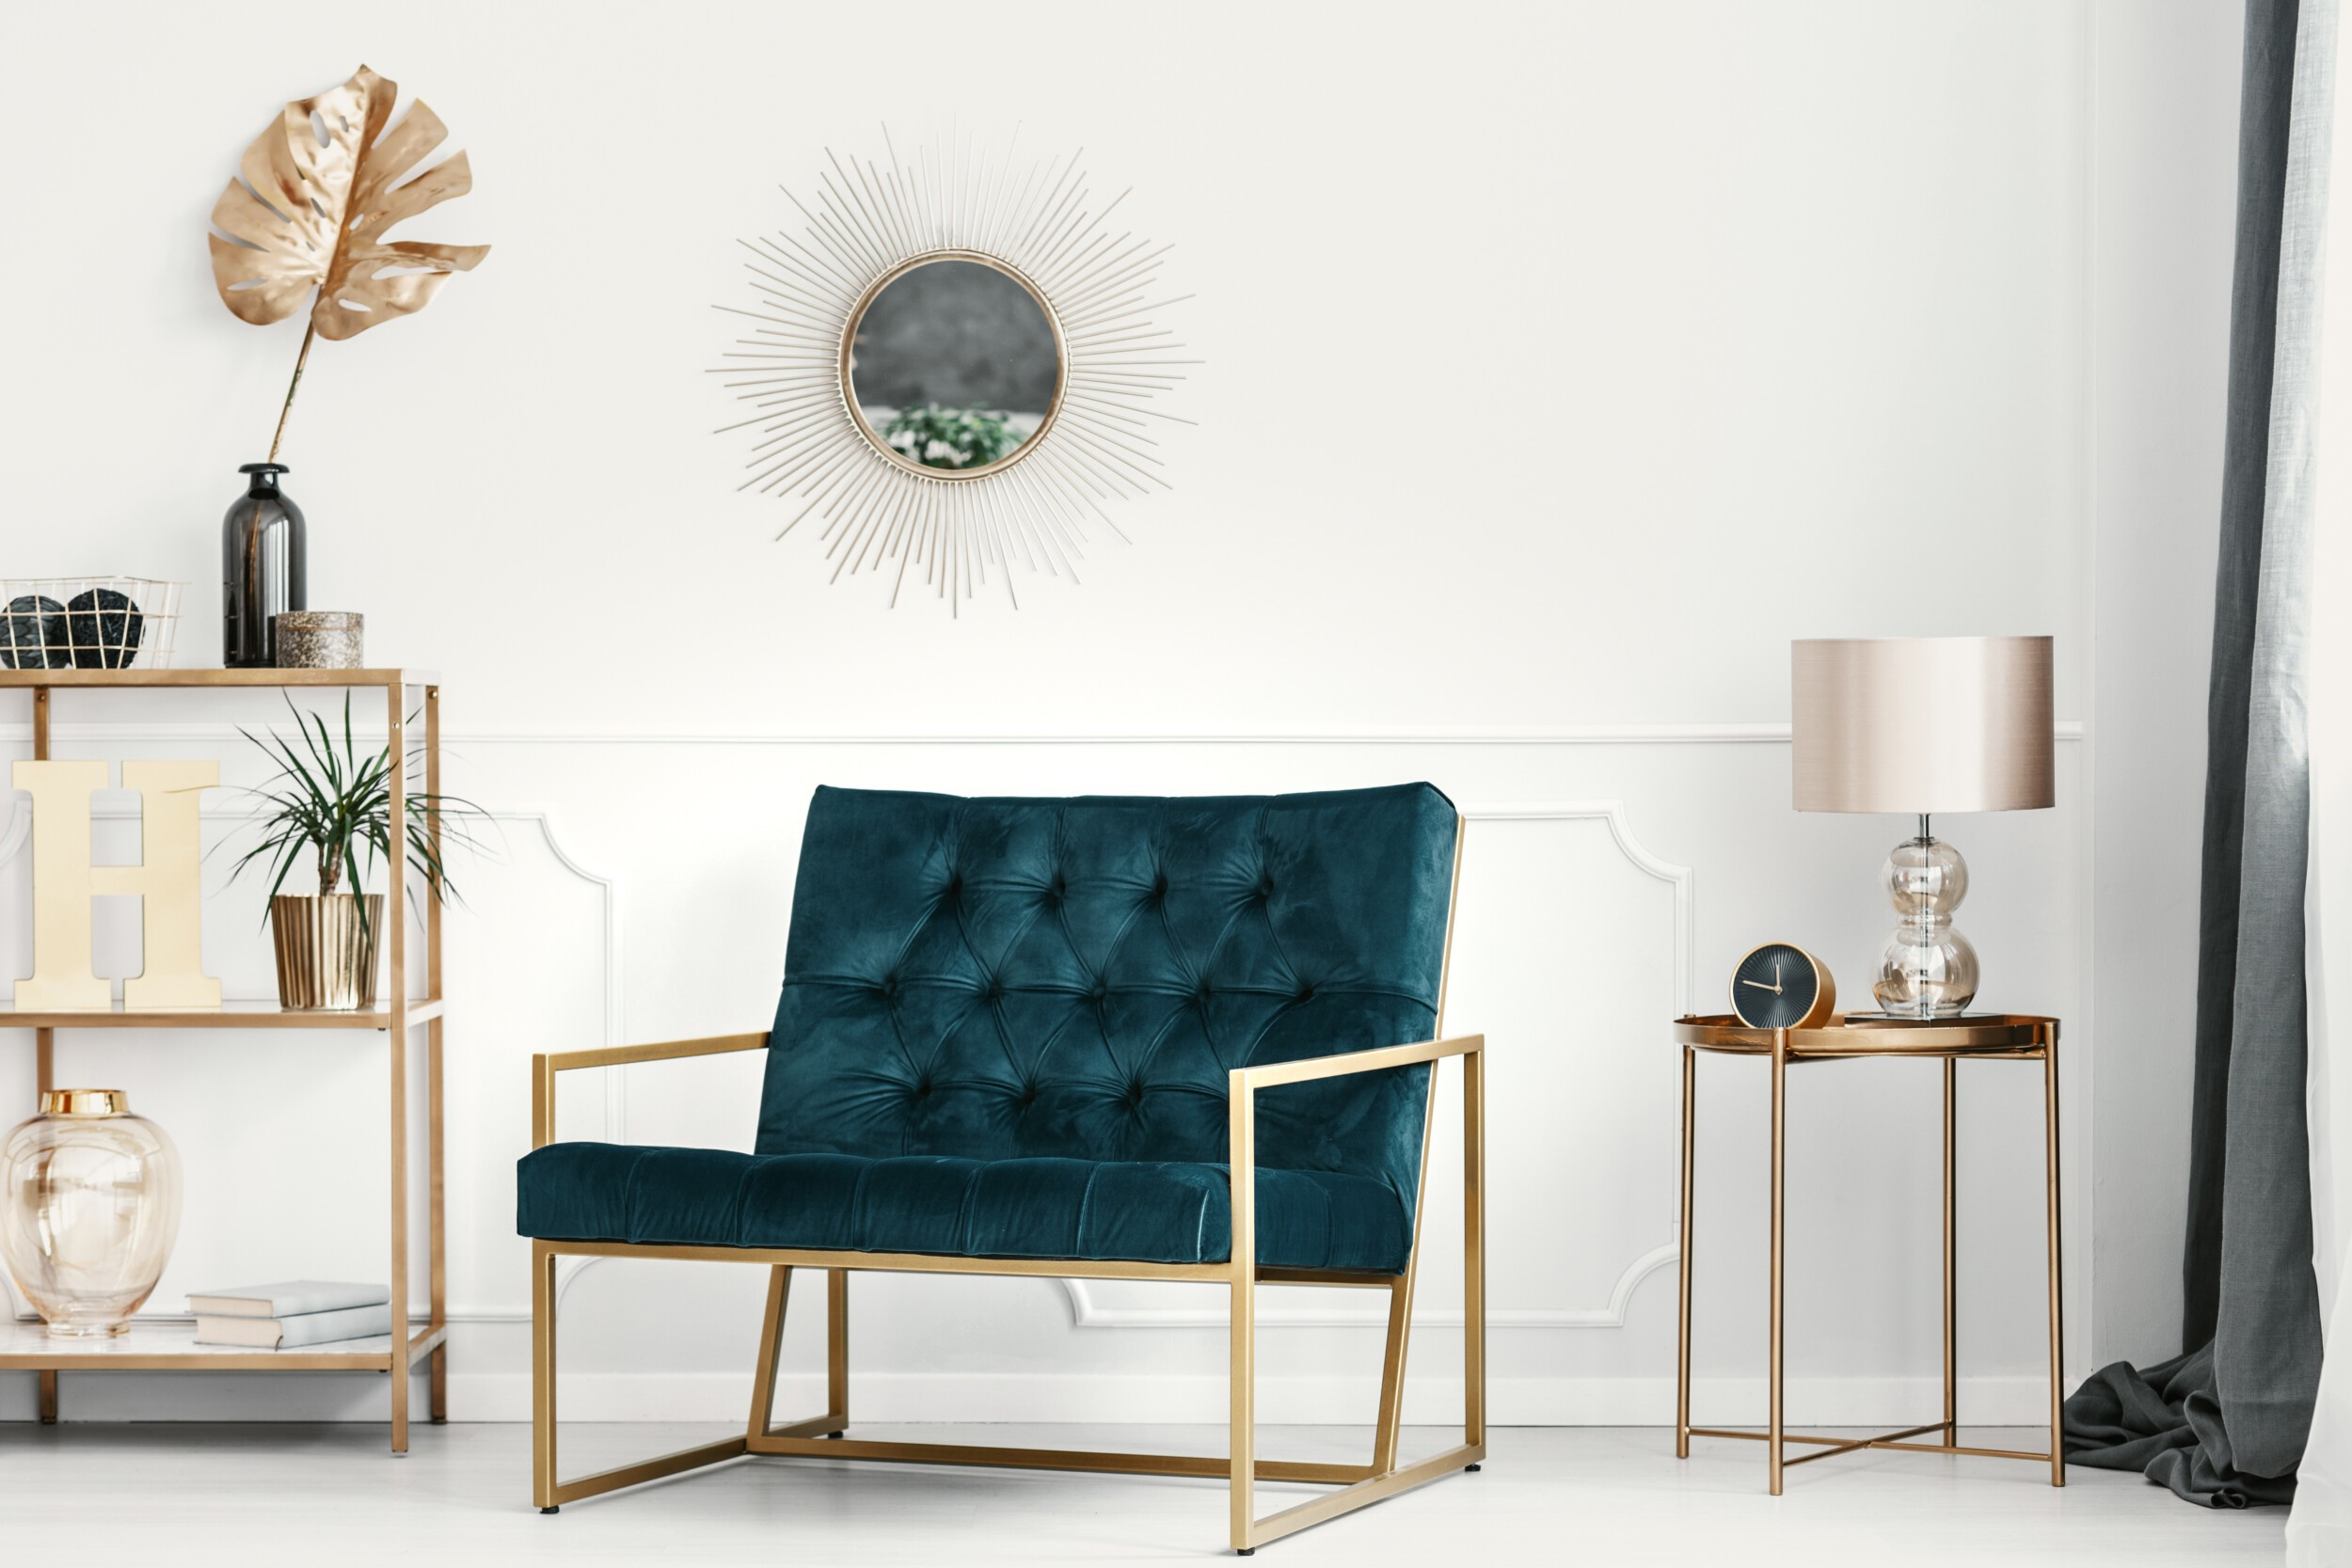 emerald green sofa by a white wall with molding